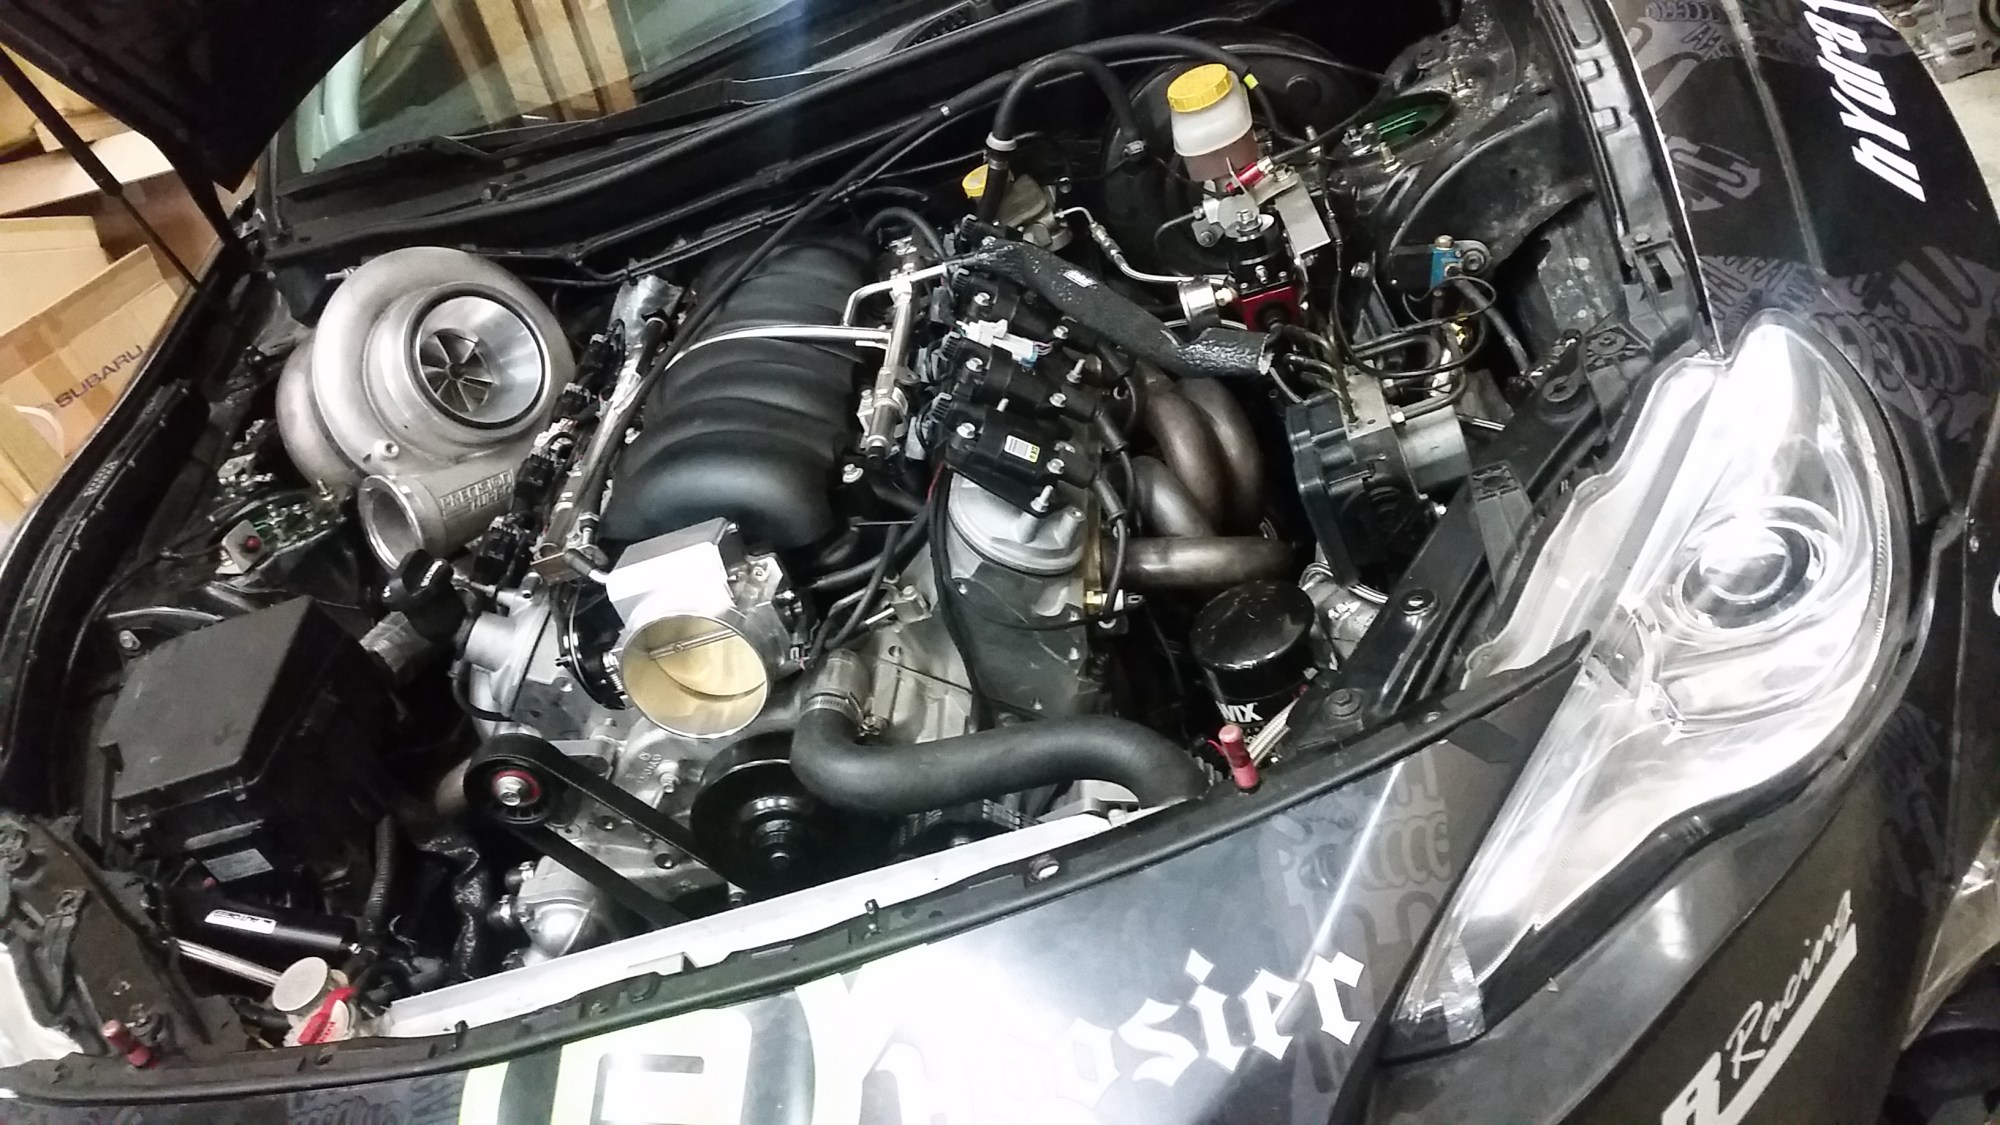 hight resolution of we ve been racing and setting records since 2012 using this engine management solution and now we ve adapted it for your monster 86 v8 conversion